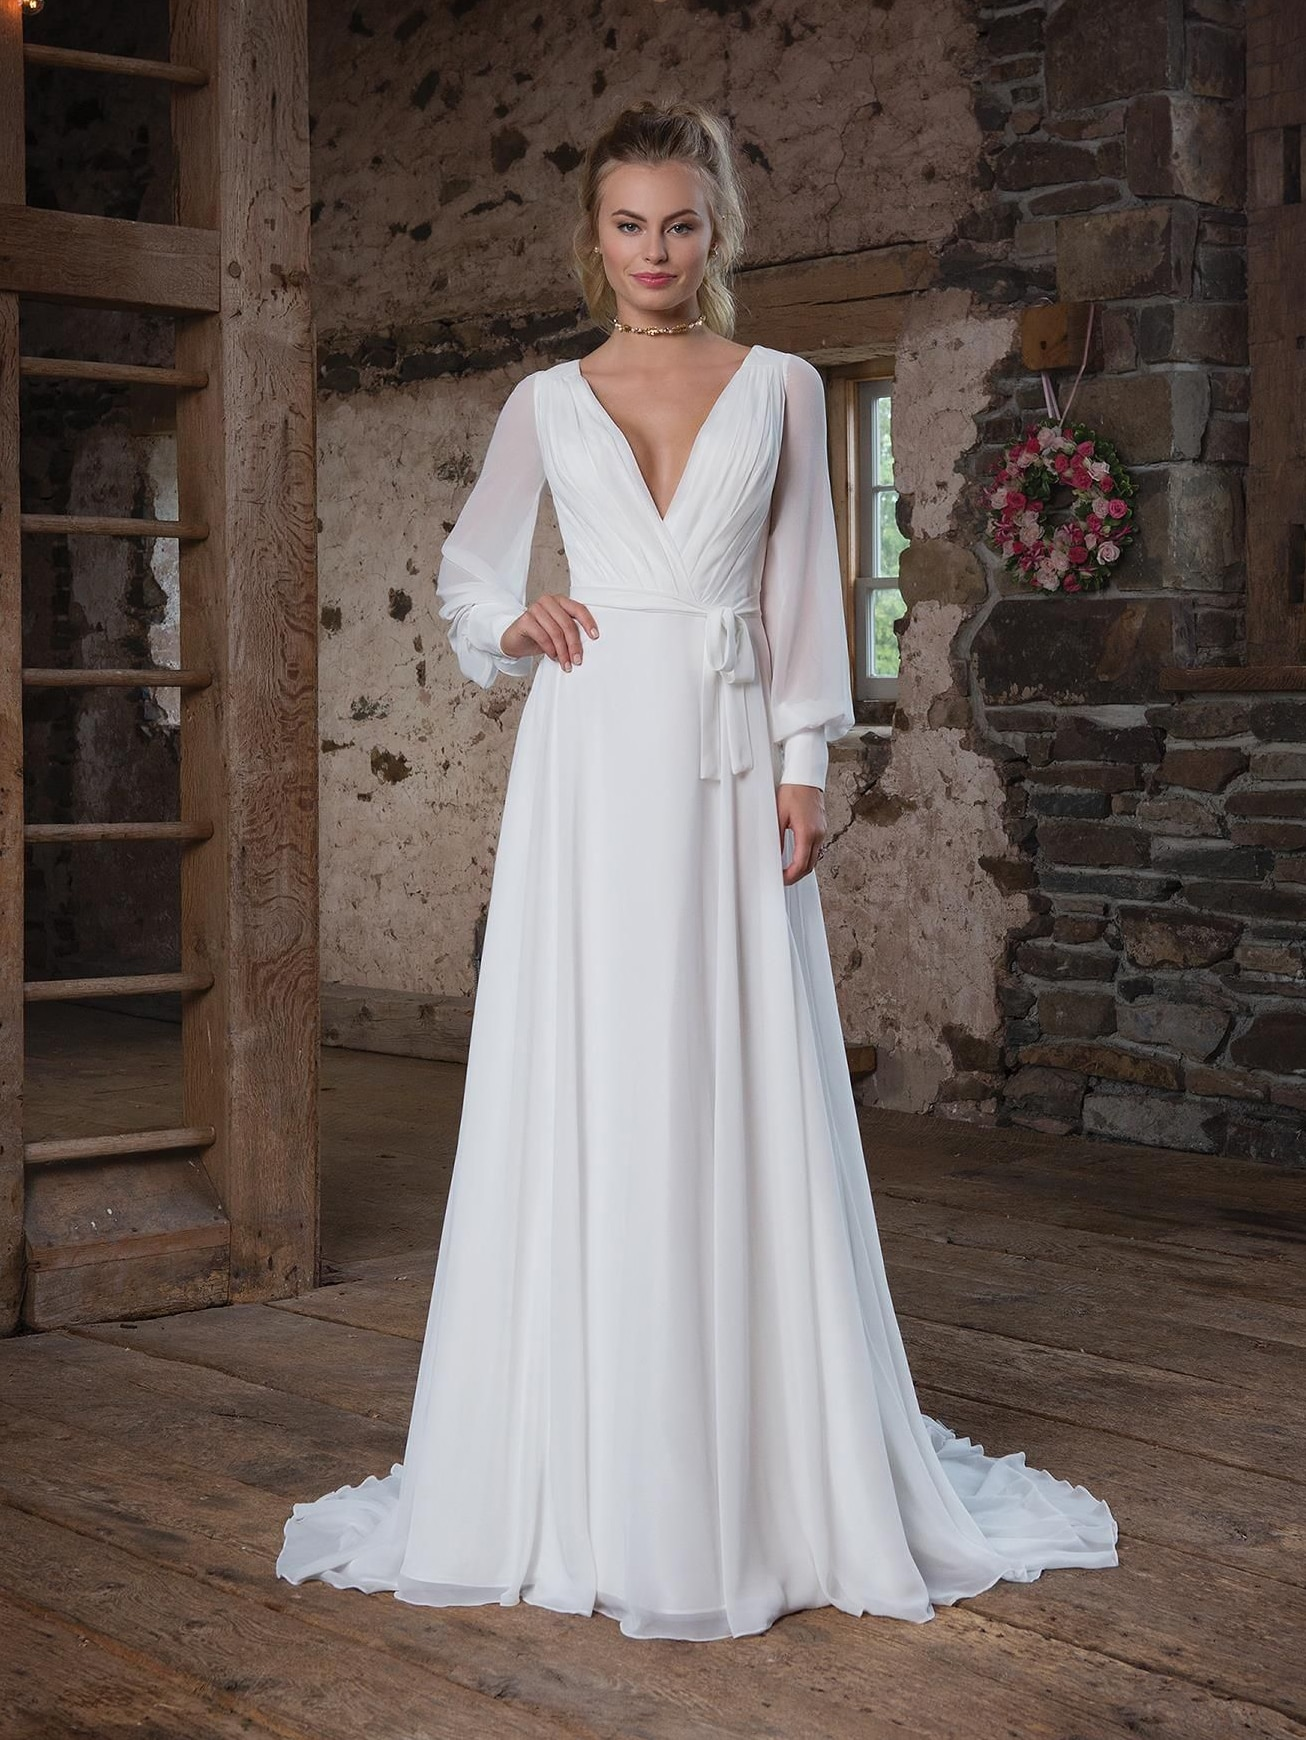 off-white-simple-elegant-pleated-chiffon-wedding-dress-long-puff-sleeves-open-back-v-neck-a-line-beach-bridal-gowns-sweep-train